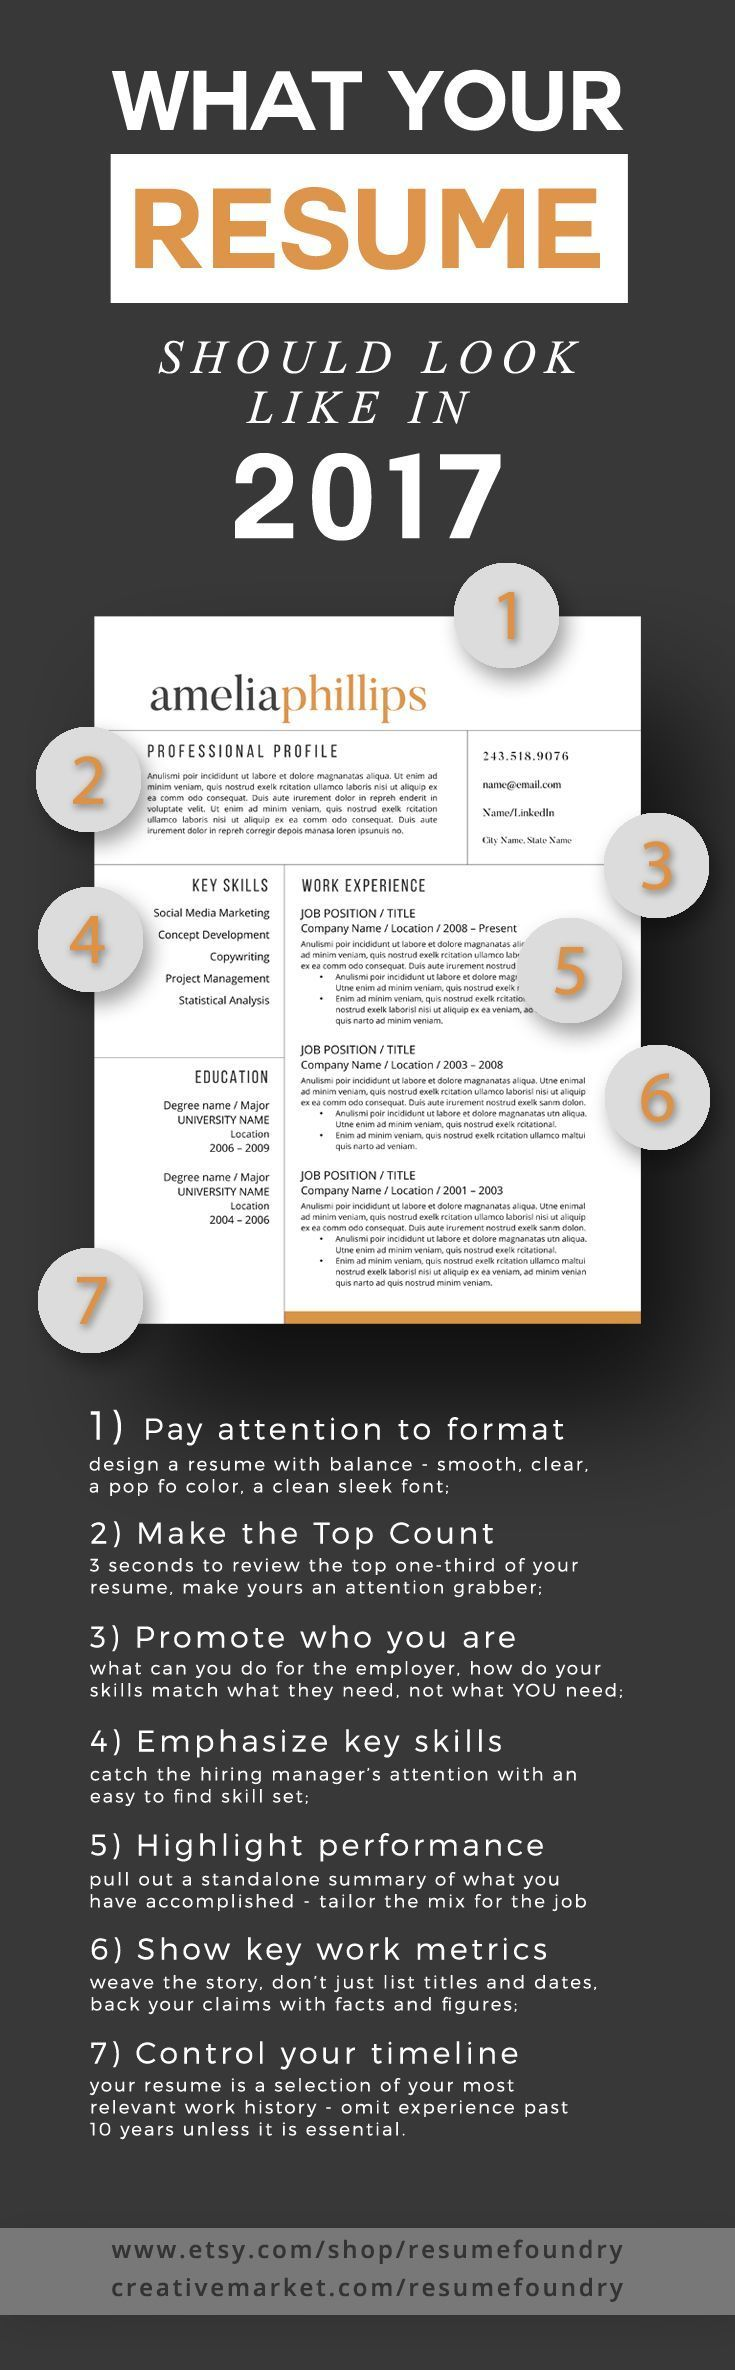 good objective on a resume%0A Resume tips  what your resume should look like in